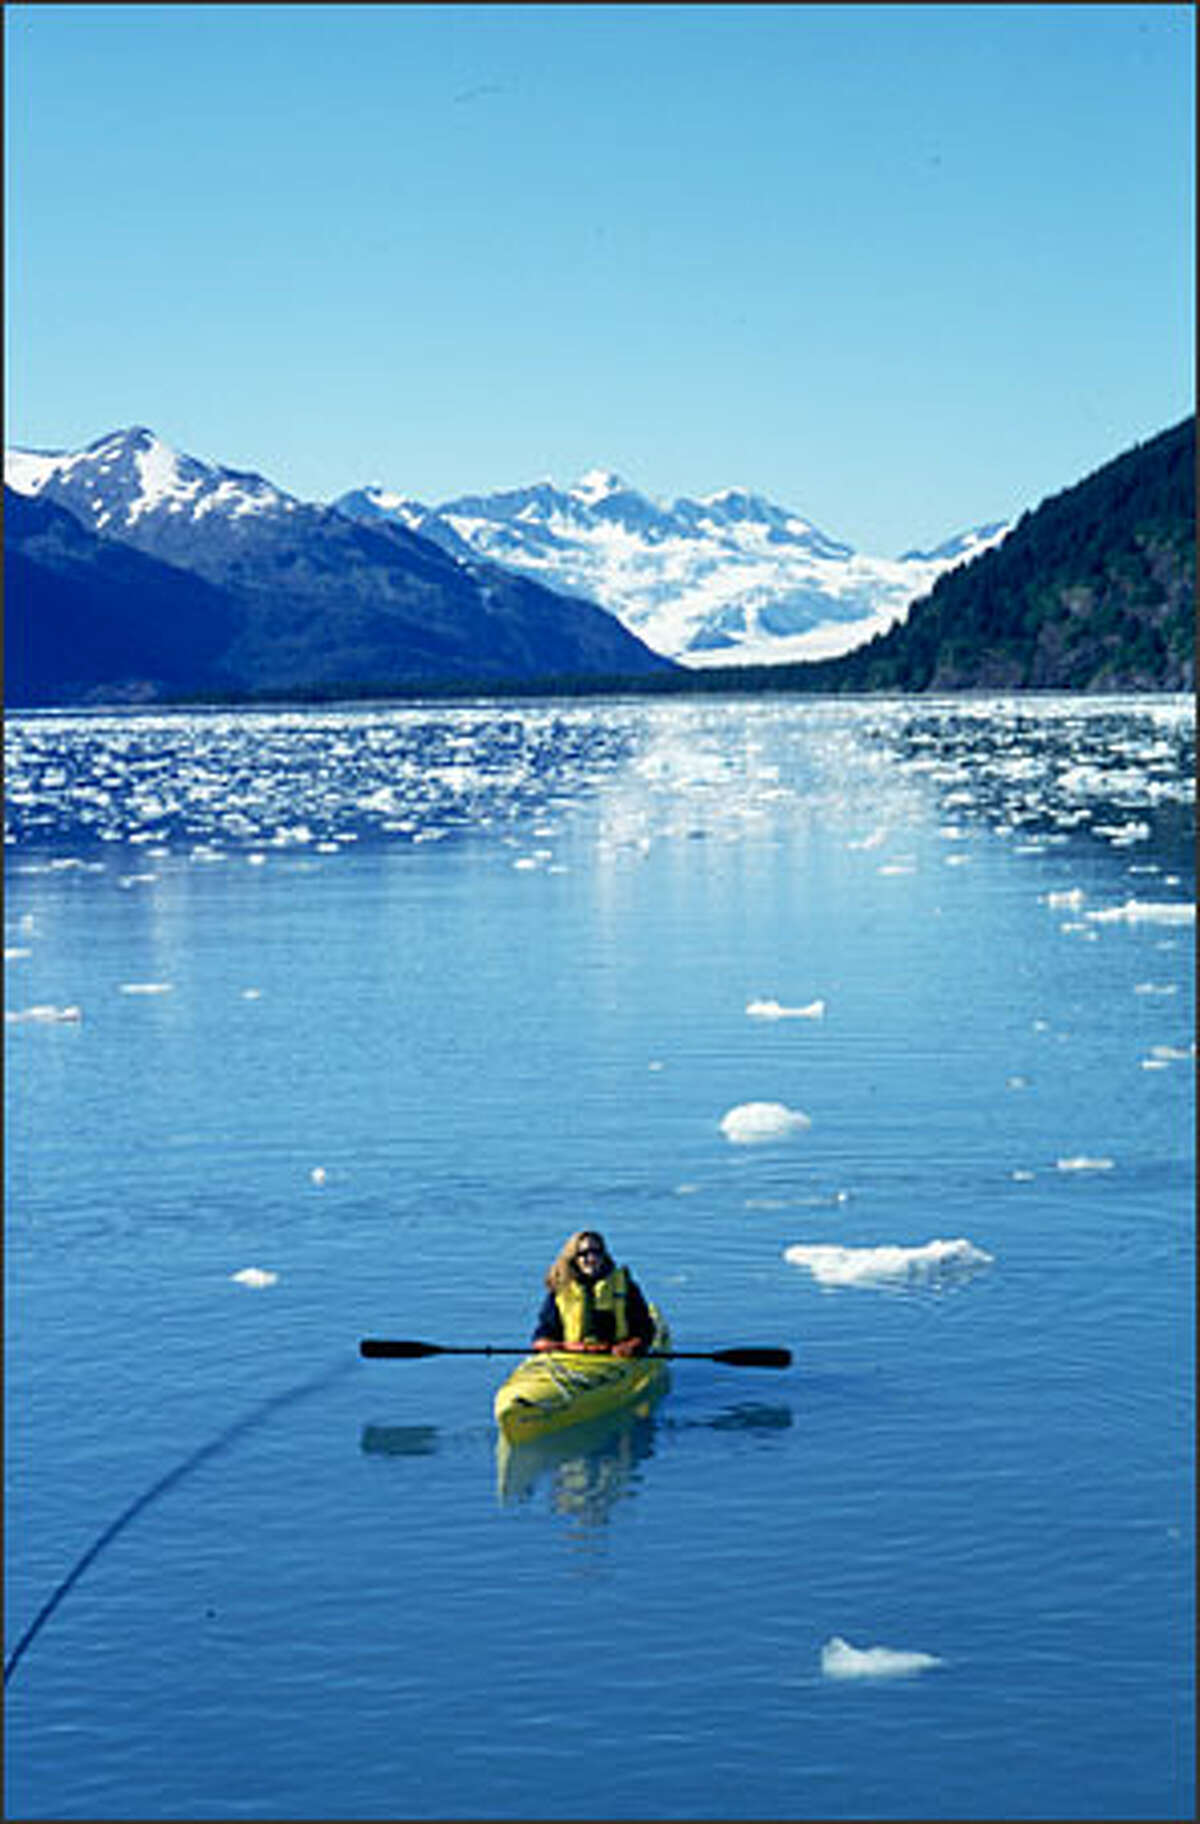 Bellamy Pailthorp, of KNKX Radio, kayaks in Alaska's Harriman Fjord, as part of boat trip in Prince William Sound. .